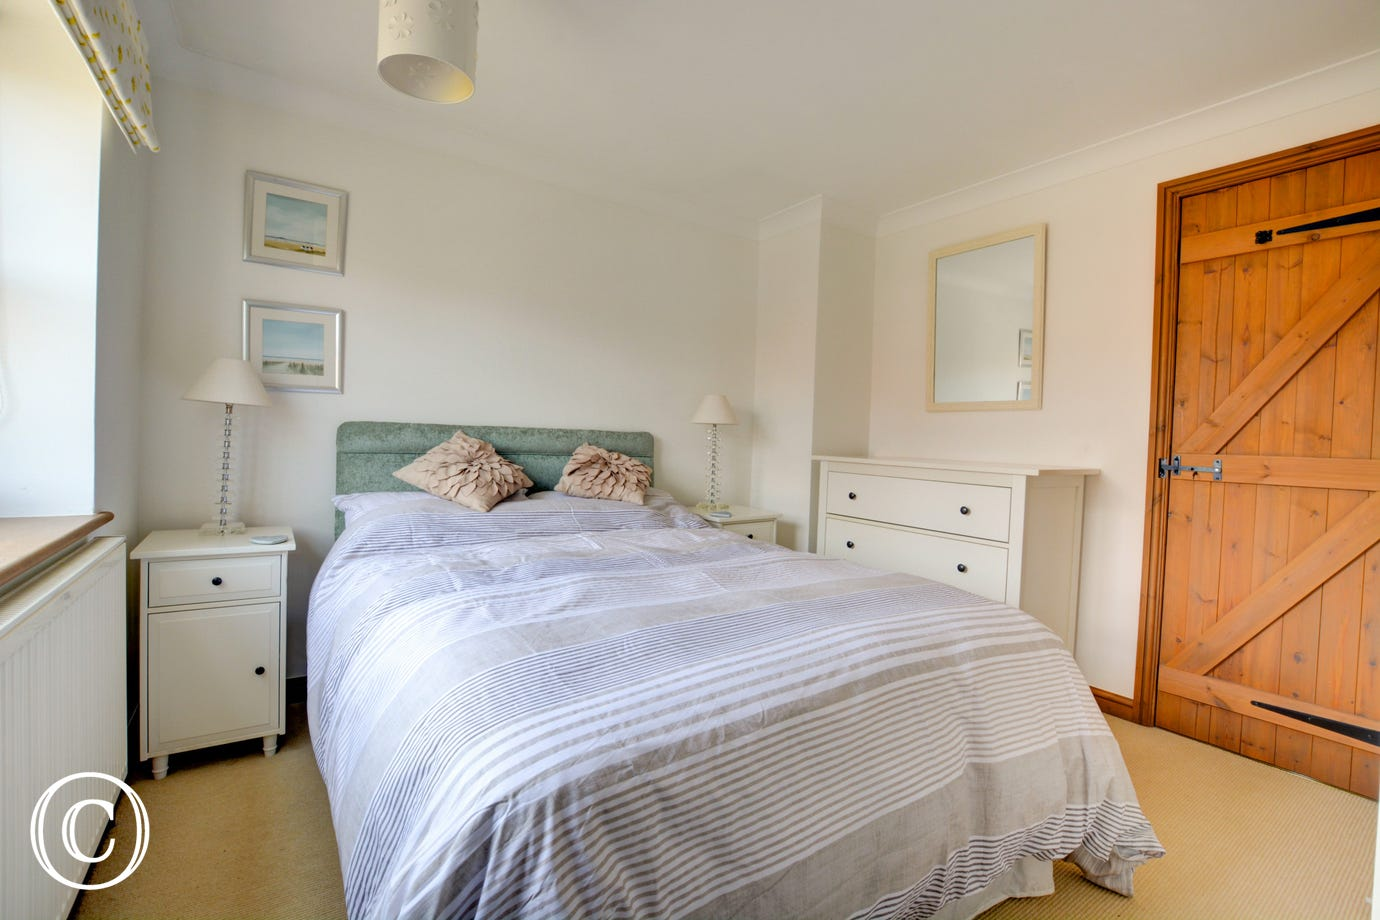 Bedroom 1 with double bed and bedside tables